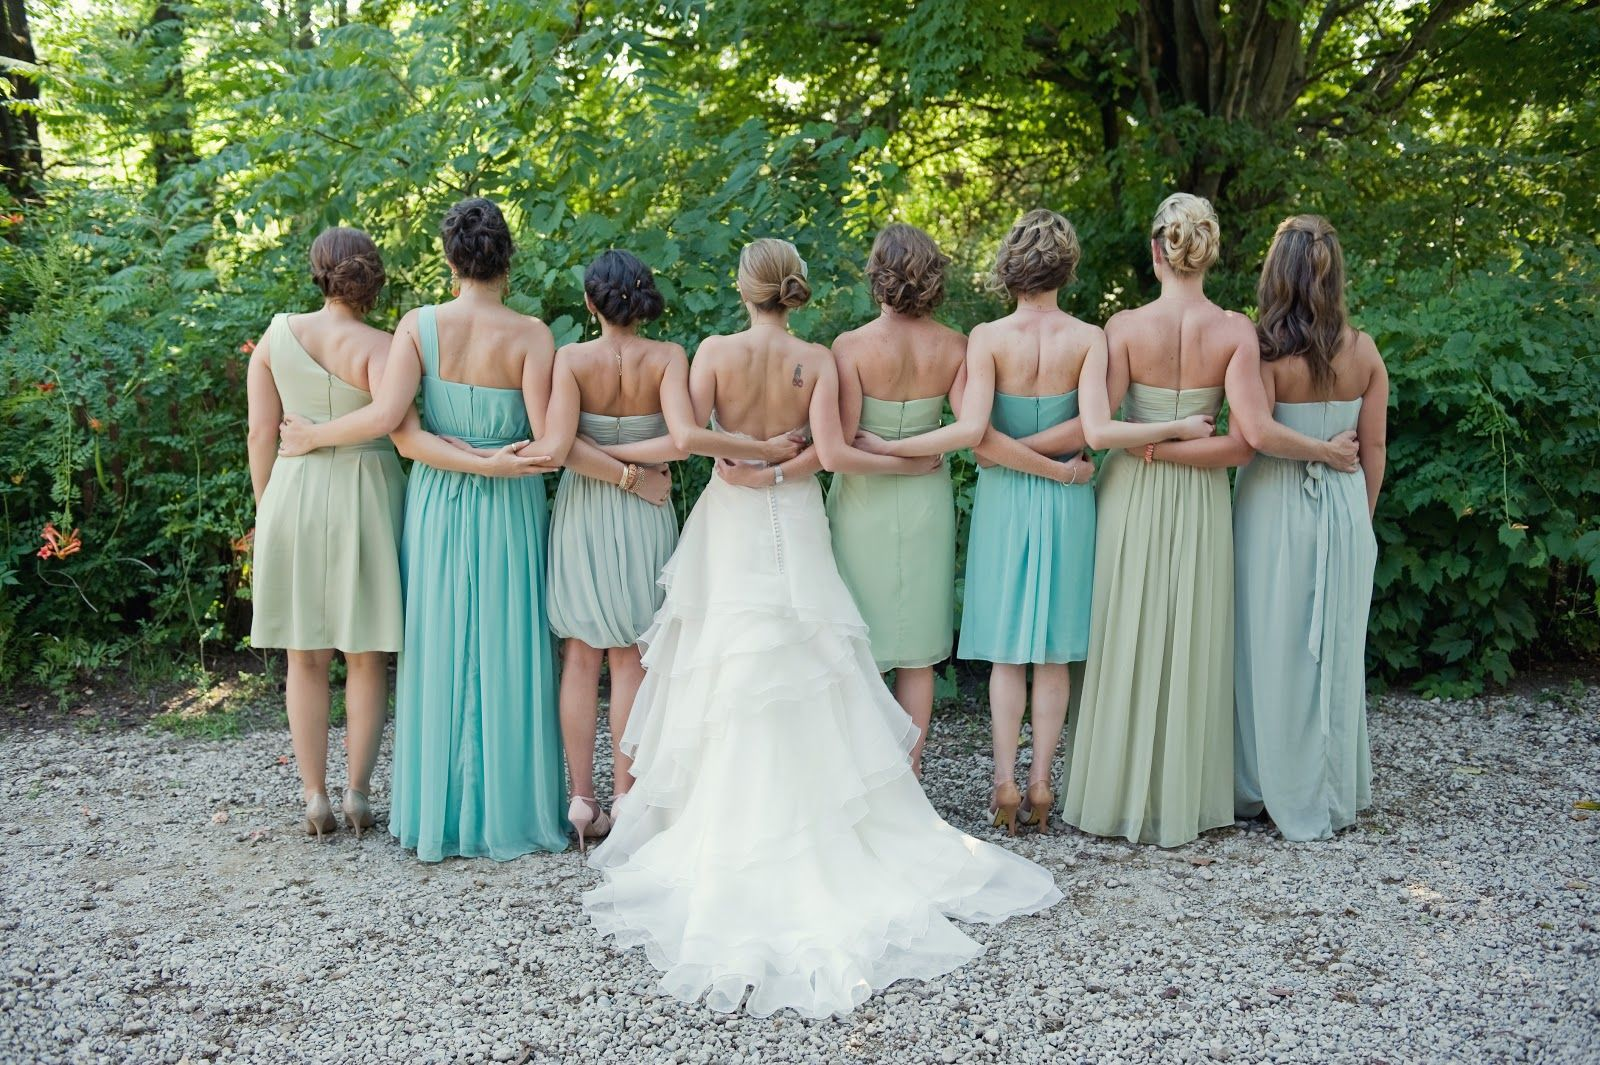 Bridesmaids pic arms intertwined mismatched green dresses bridesmaids pic arms intertwined mismatched green dresses ombrellifo Gallery